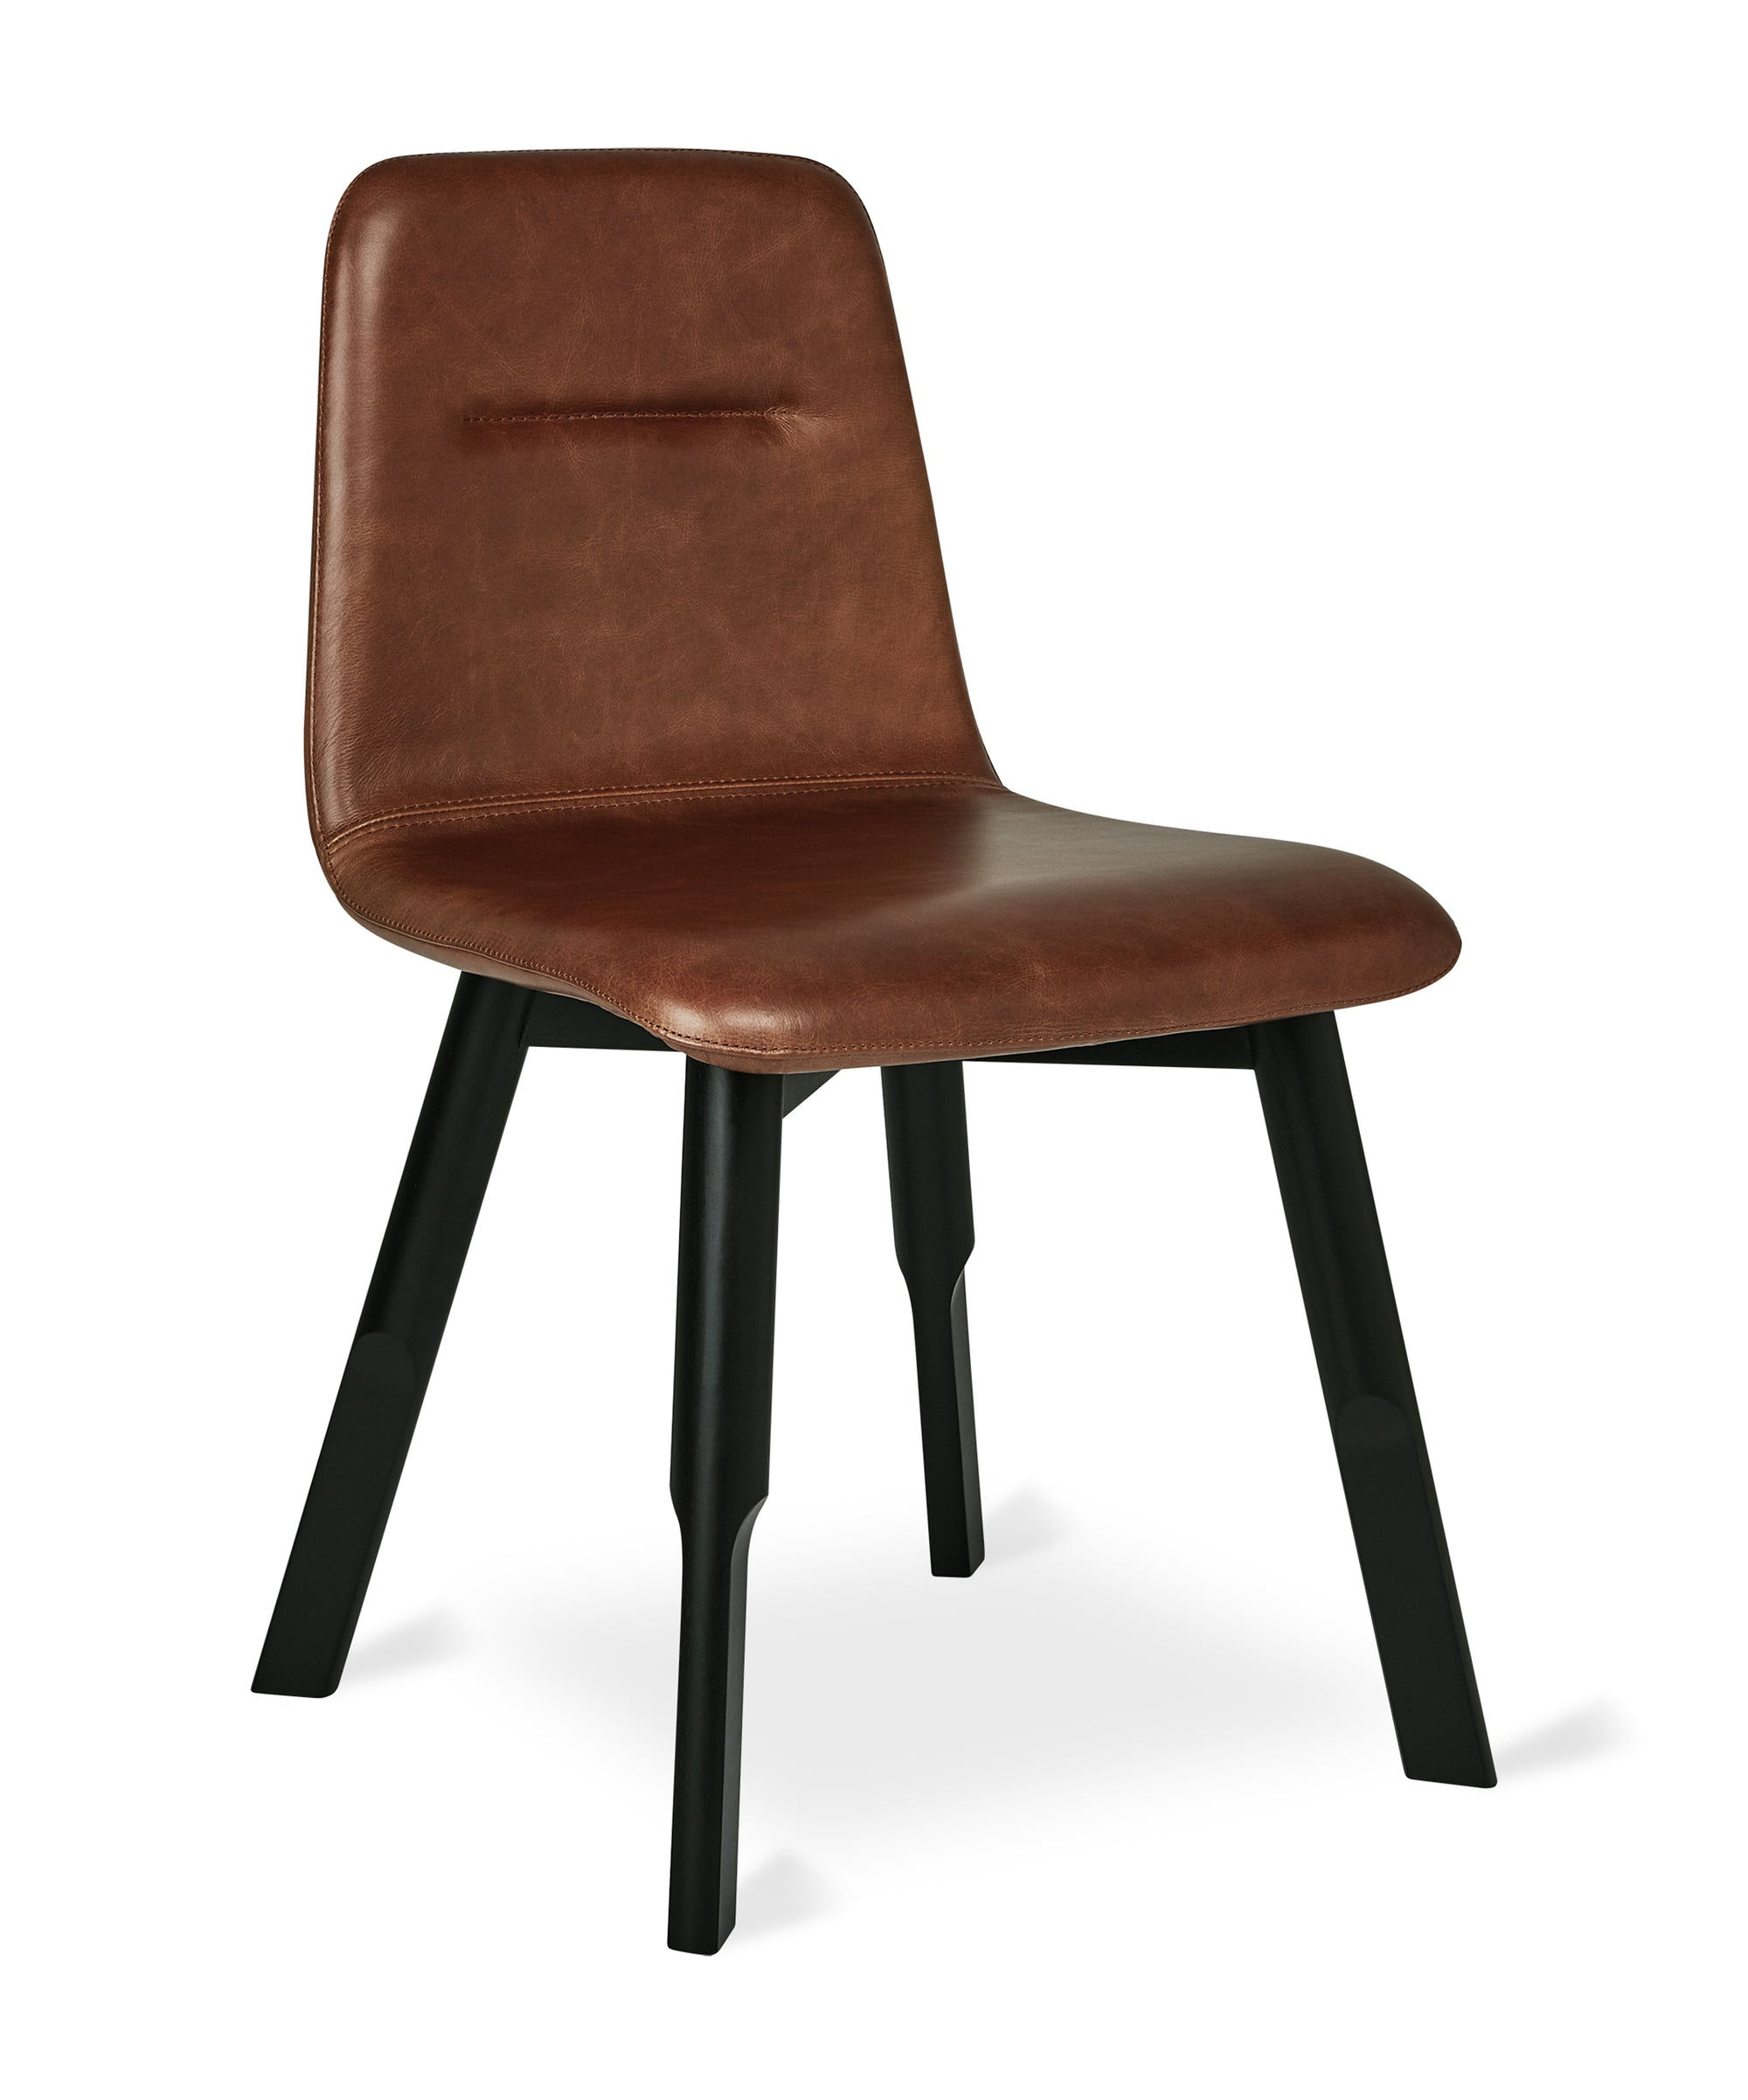 Gus* Modern Bracket Chair